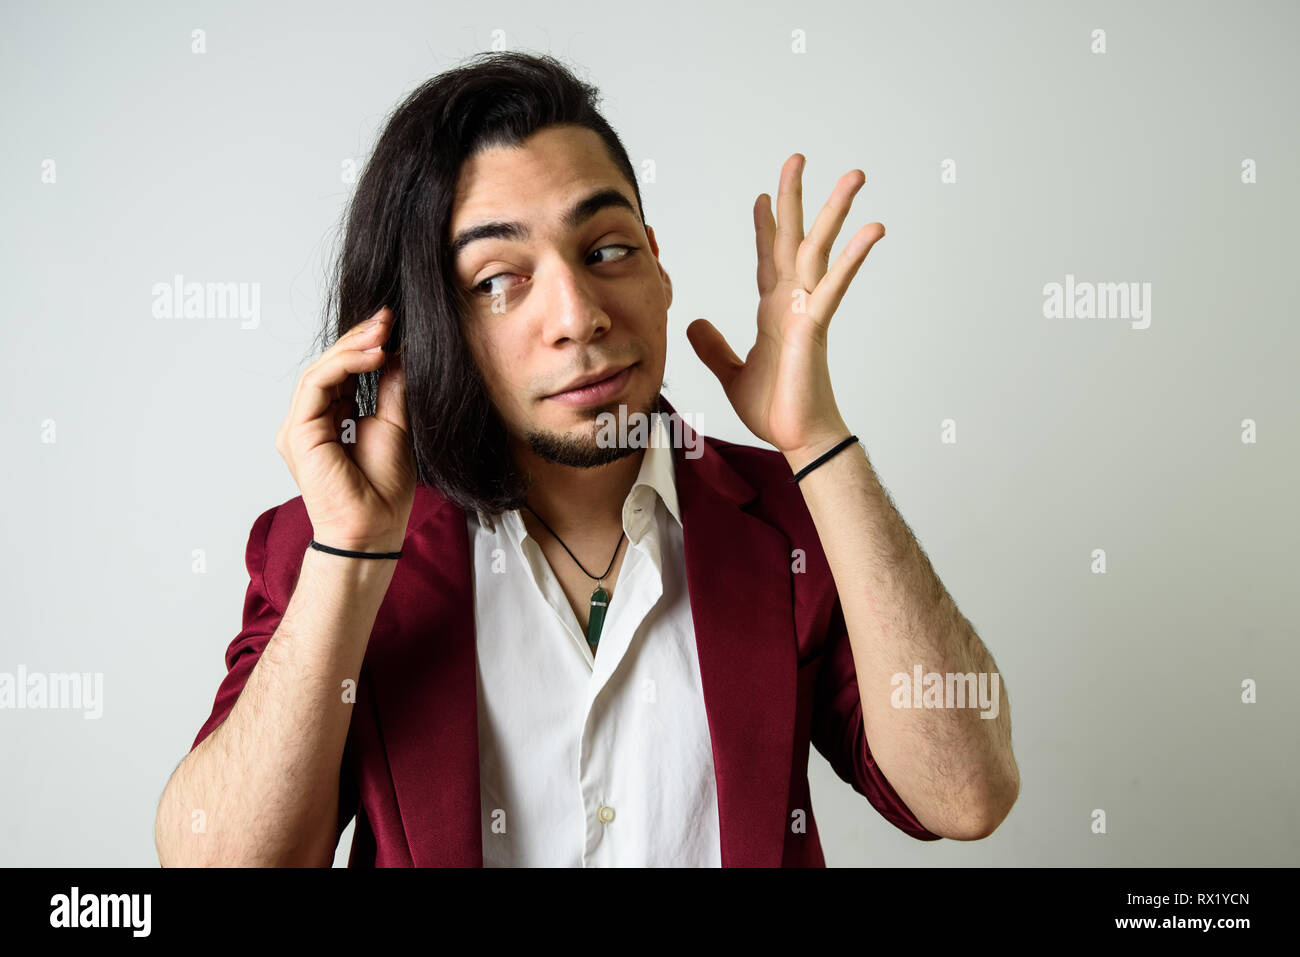 Young man with gesture of paying attention, isolated on white - Stock Image